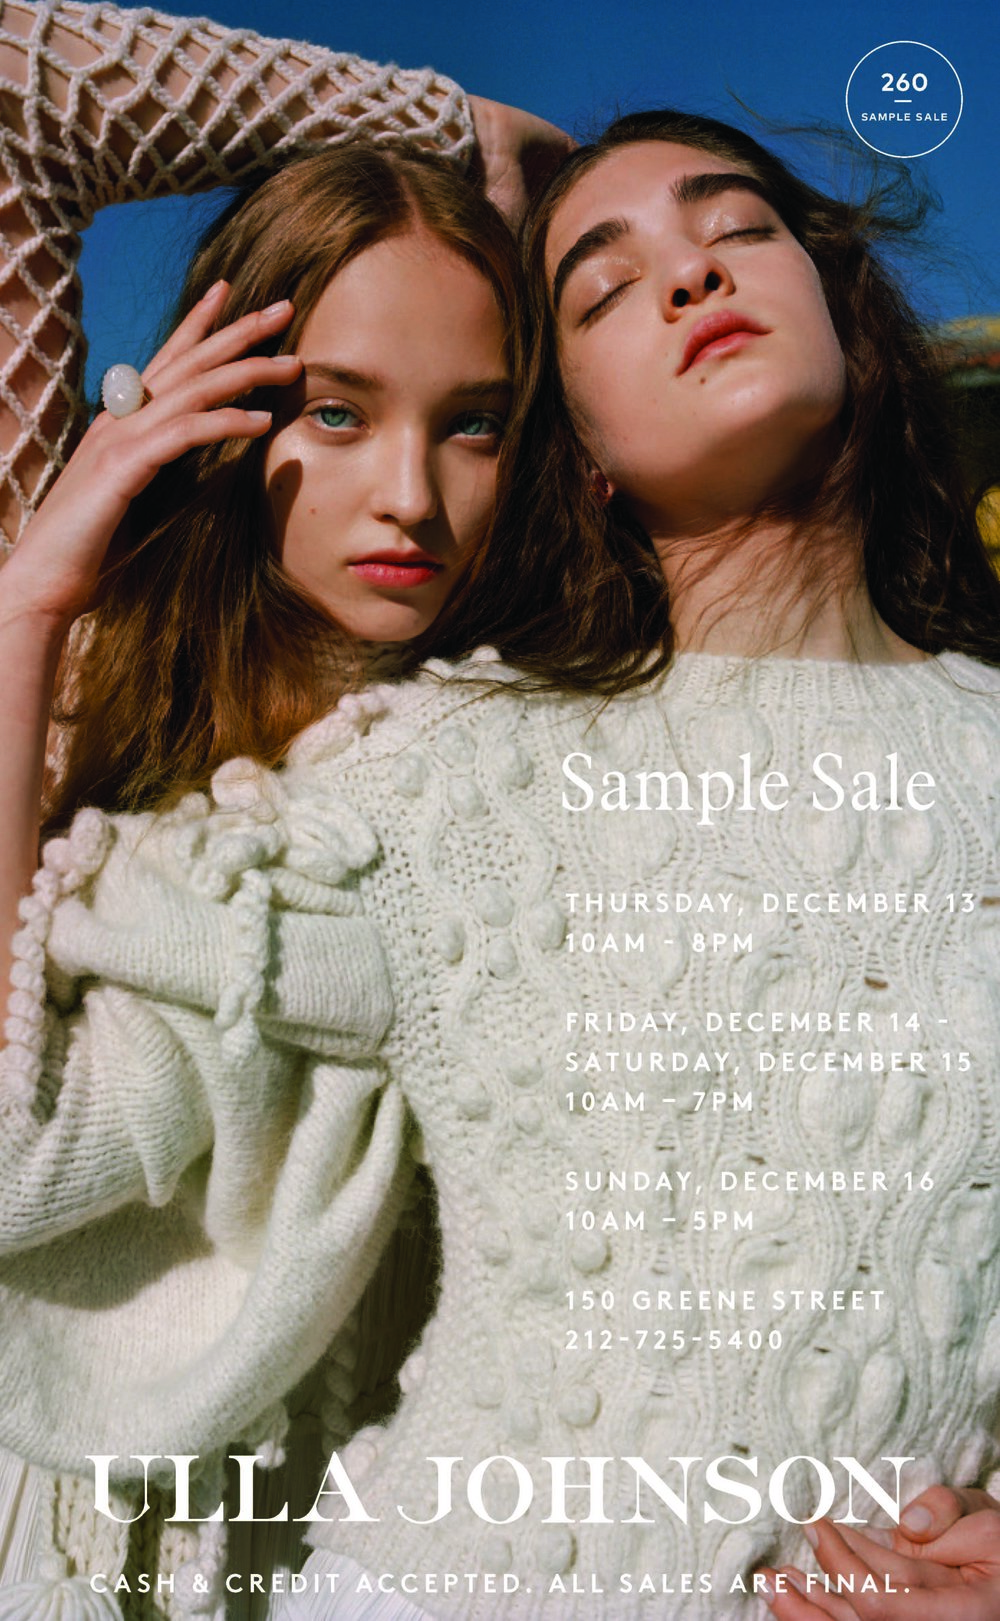 UJ_SampleSale_Invite.jpg